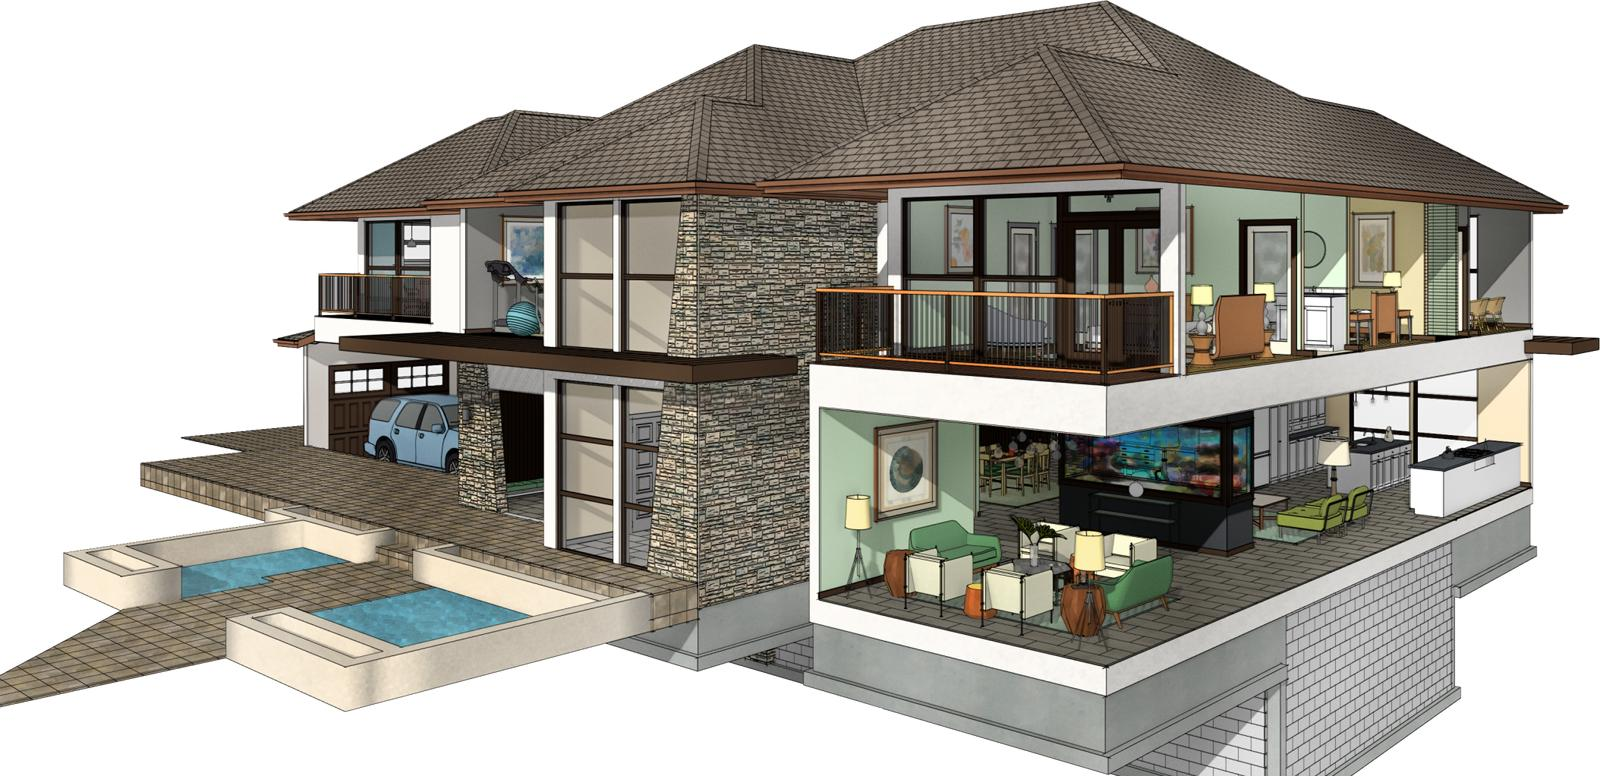 Example Home Design By Chief Architect Software.